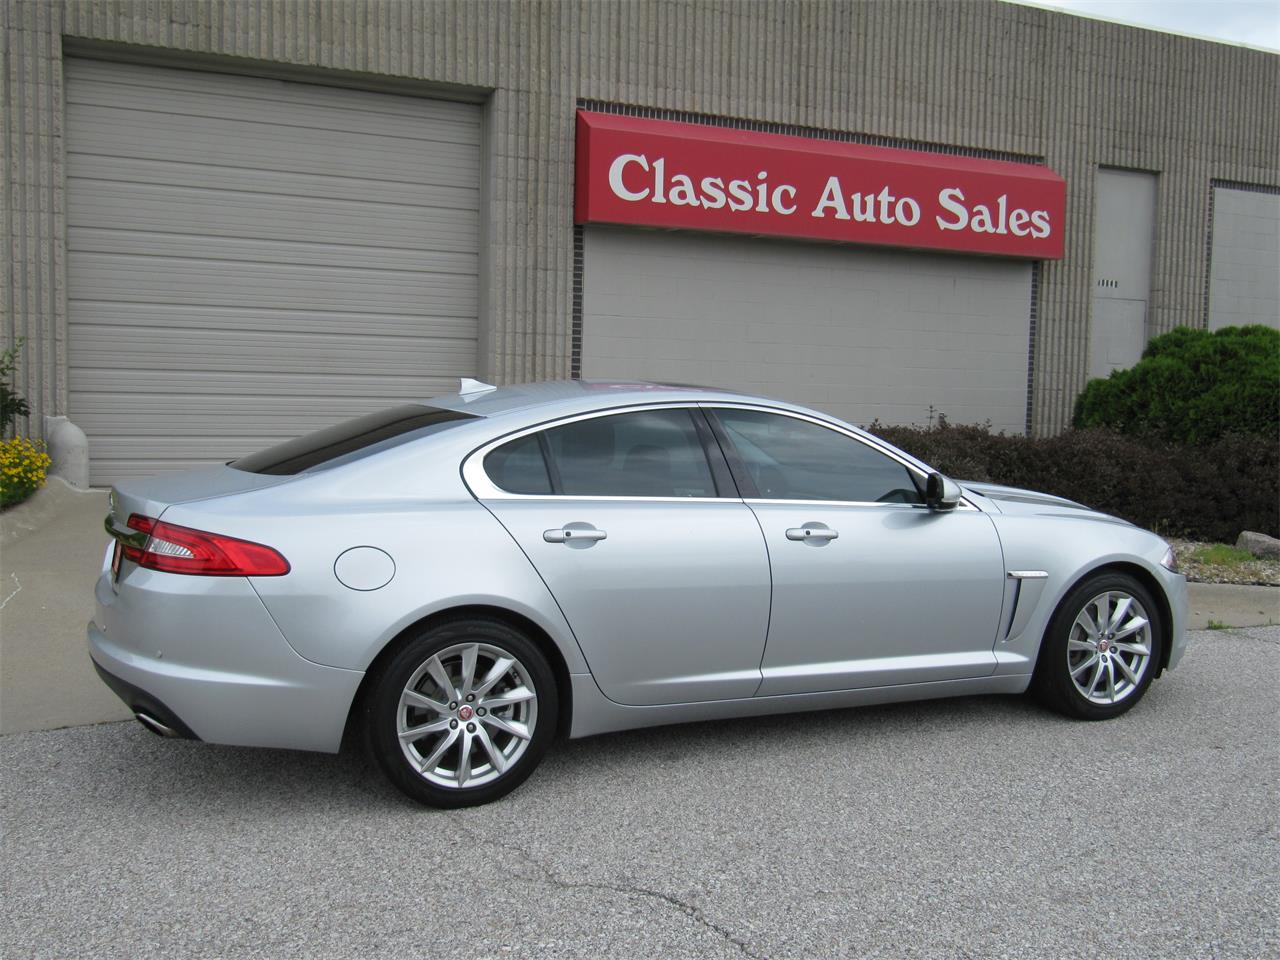 Large Picture of 2015 Jaguar XF located in Nebraska - $23,900.00 Offered by Classic Auto Sales - QD33